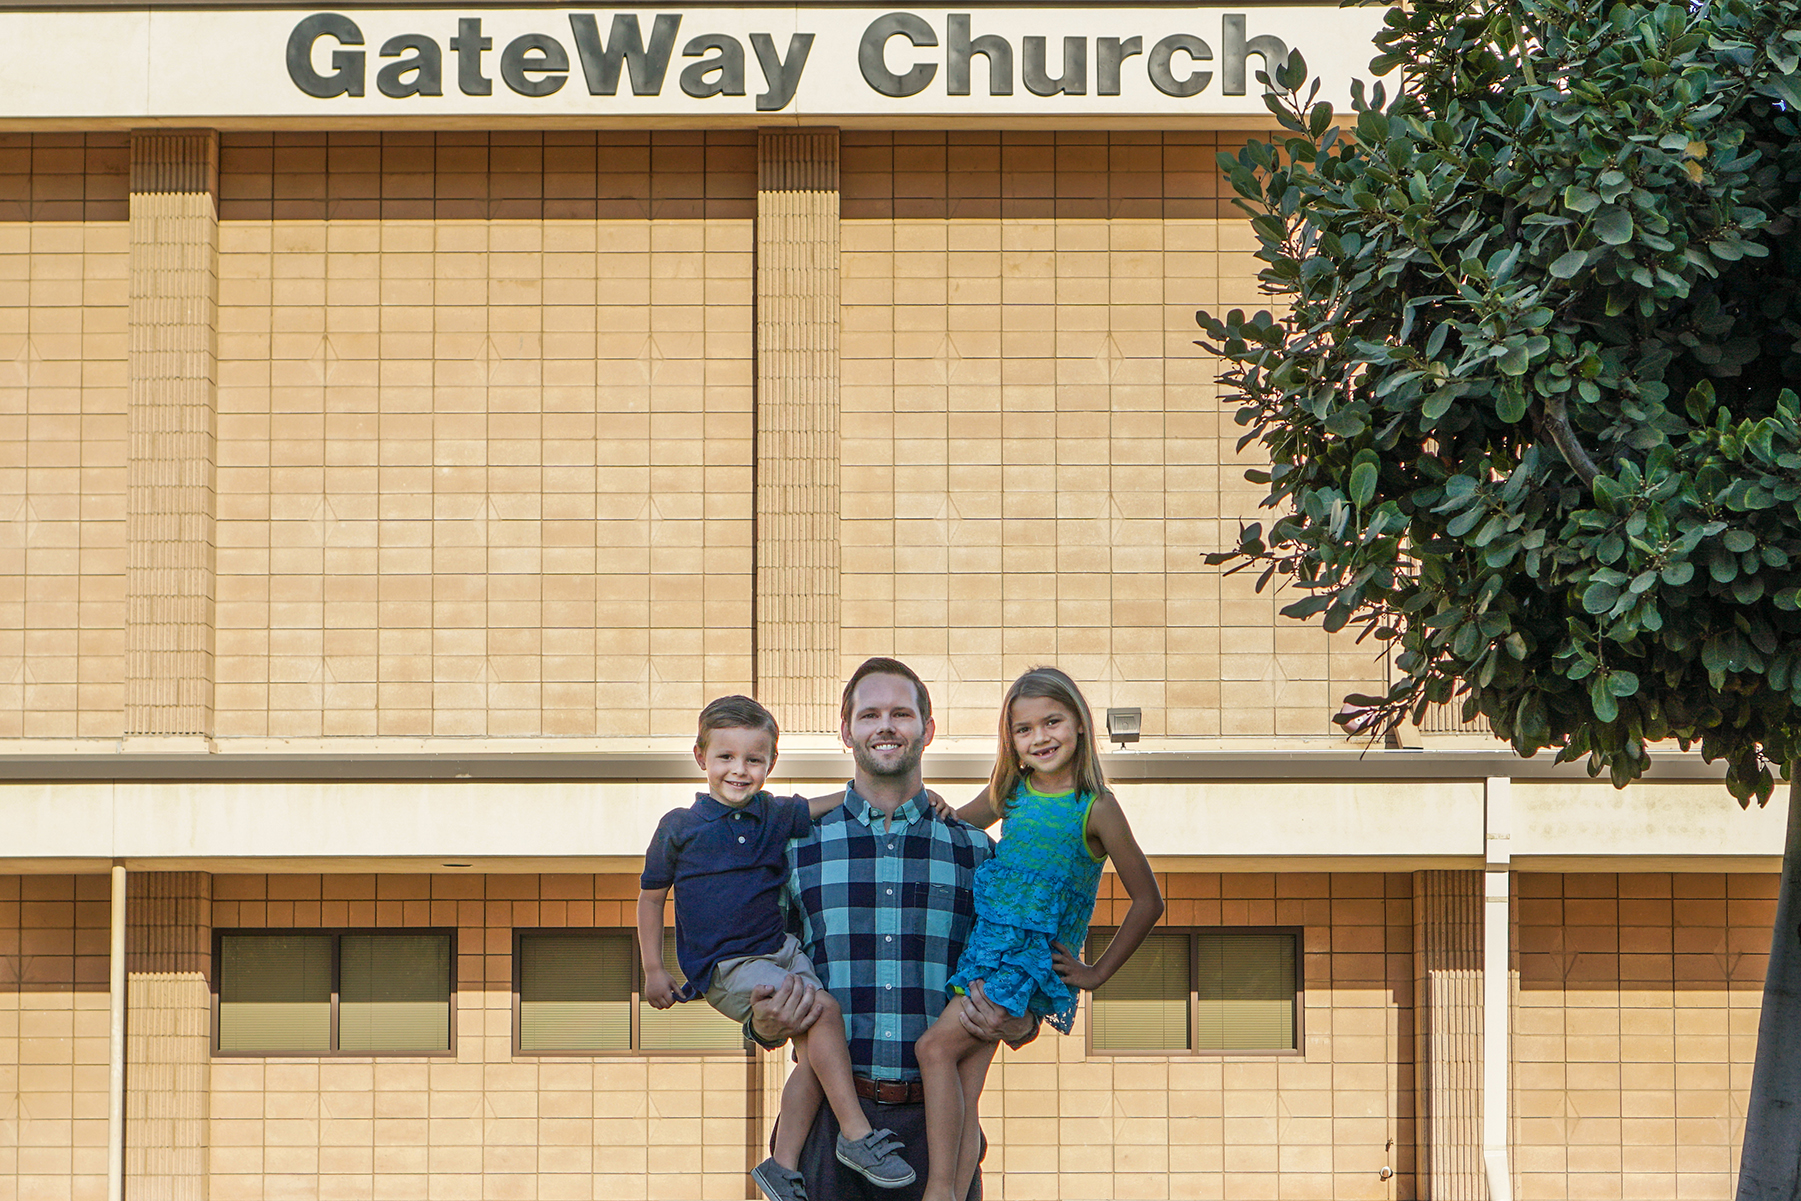 David Haun attends gateway church, volunteers at Awanas, and frequently handles photography and cinematography for the church as well.